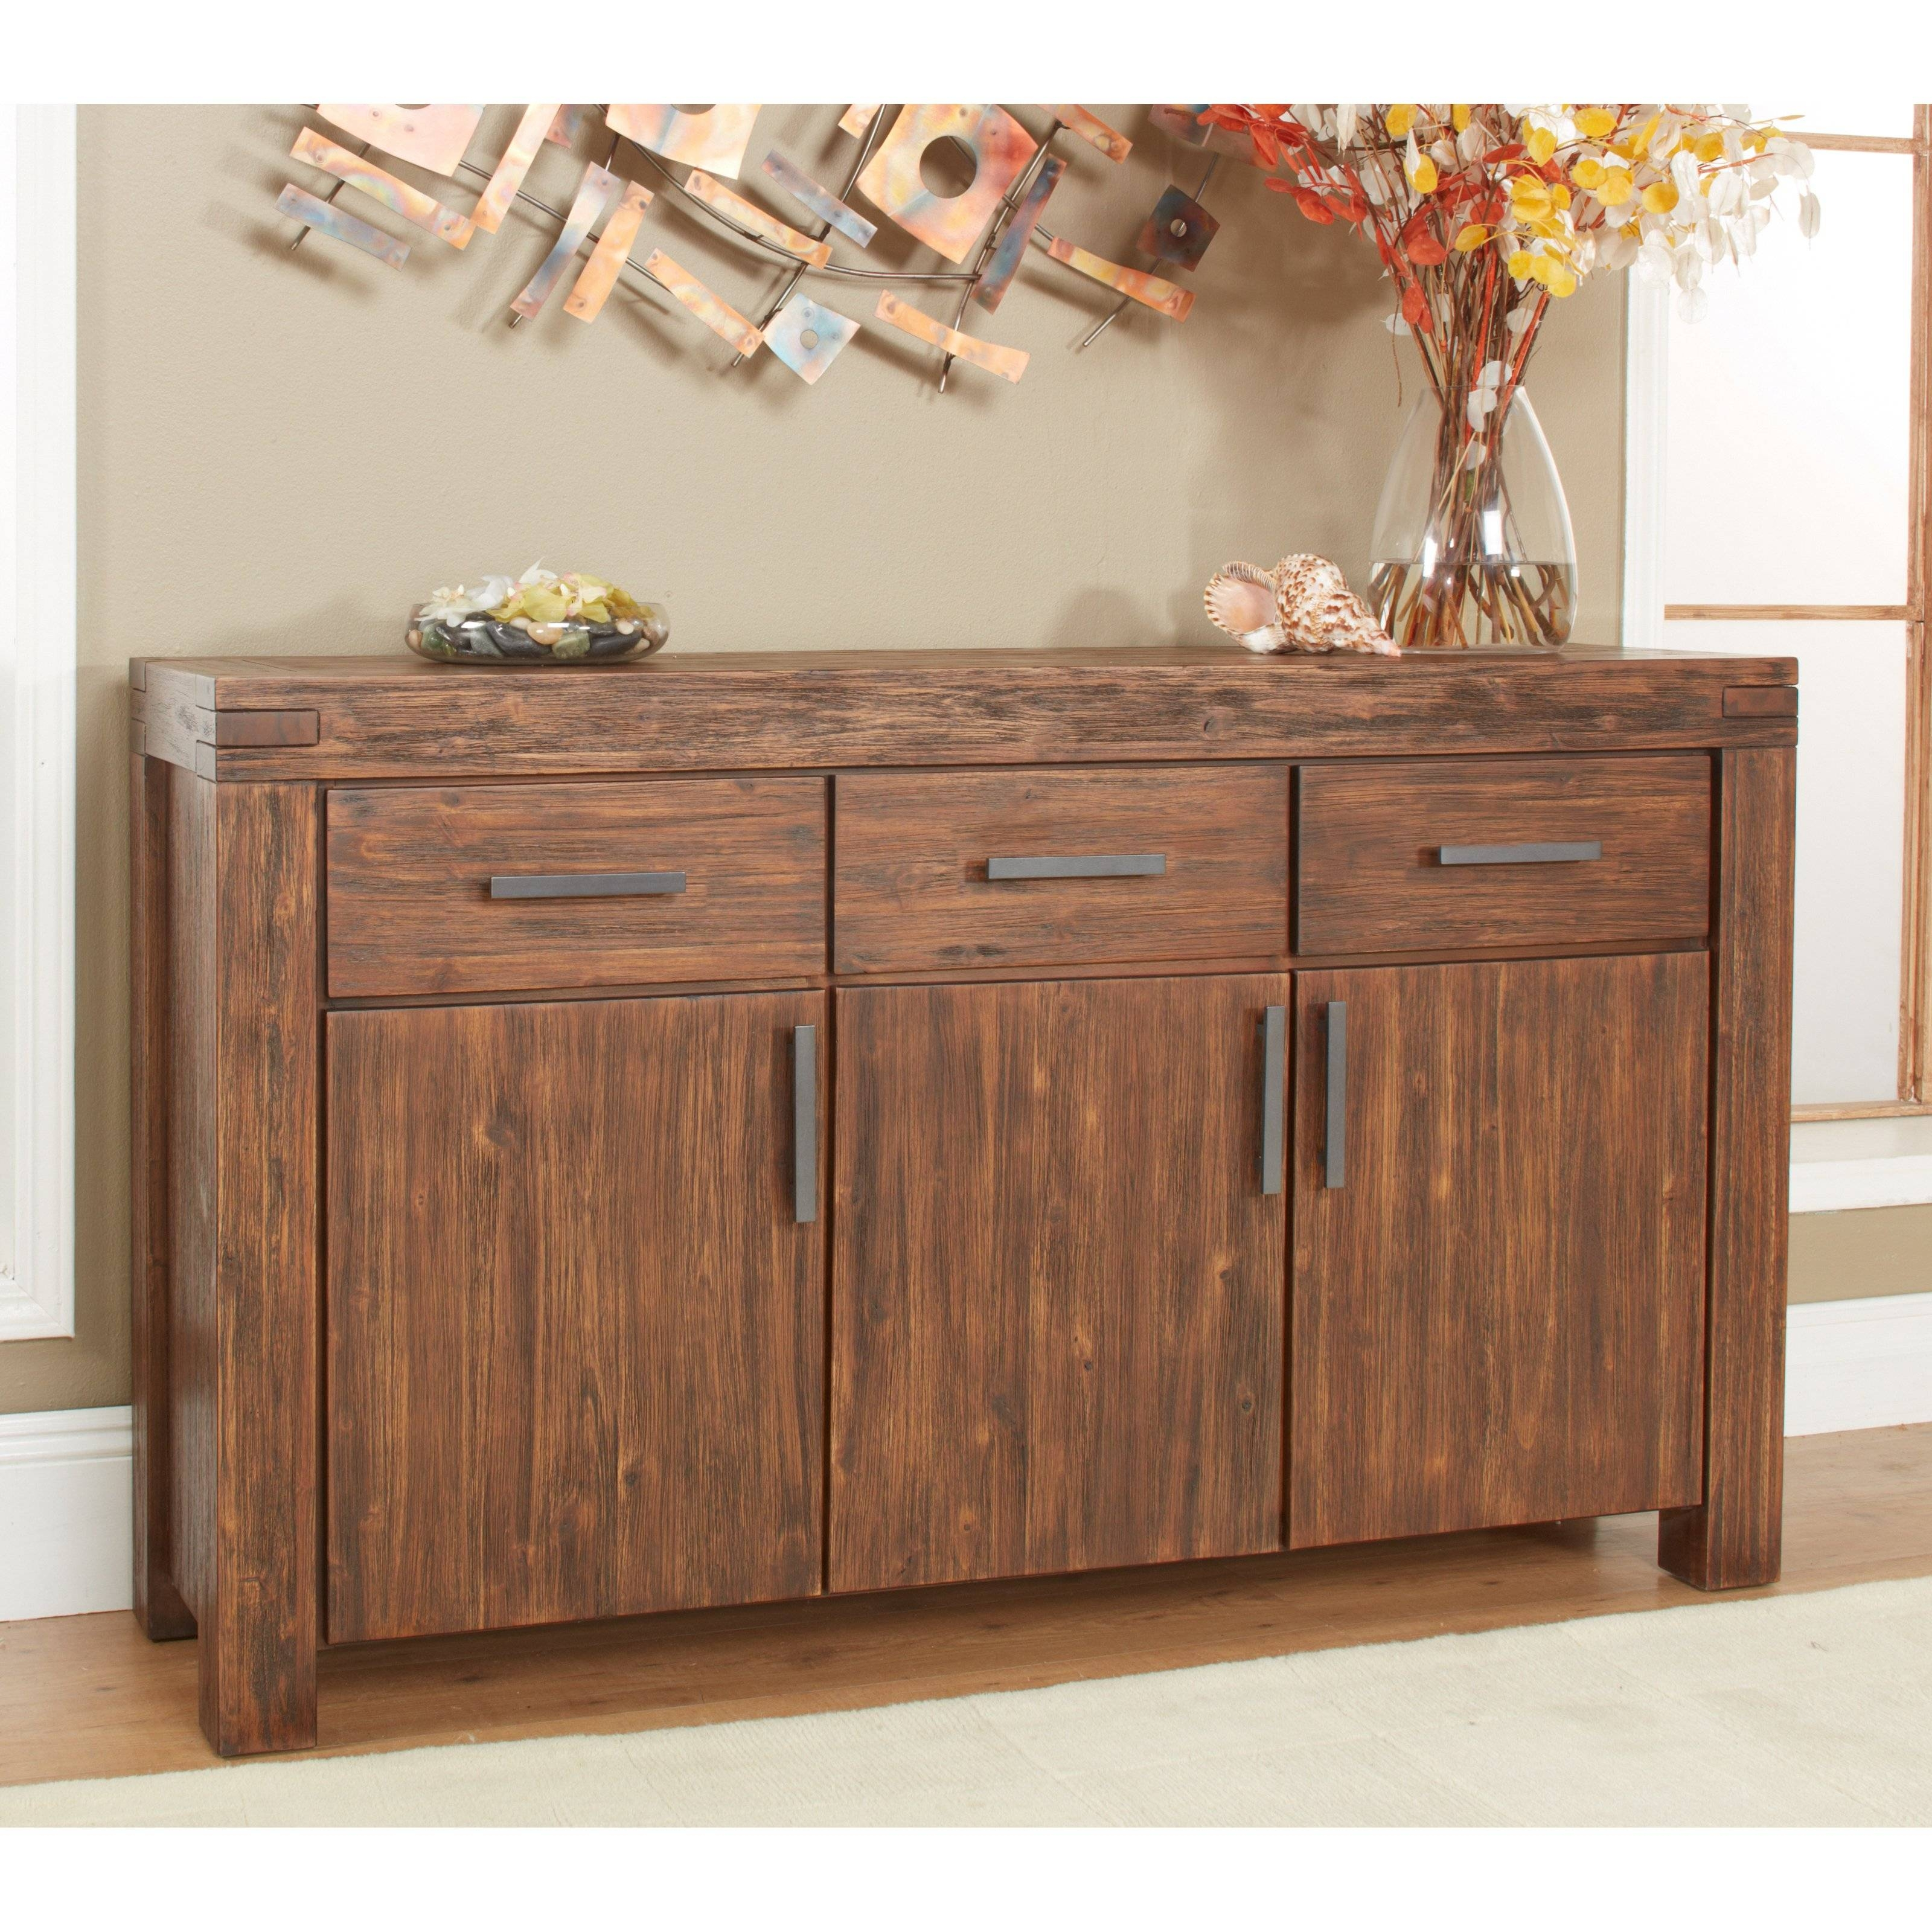 Modus Meadow 3-Door 3 Drawer Solid Wood Sideboard - Brick Brown pertaining to Amazon Furniture Sideboards (Image 18 of 30)